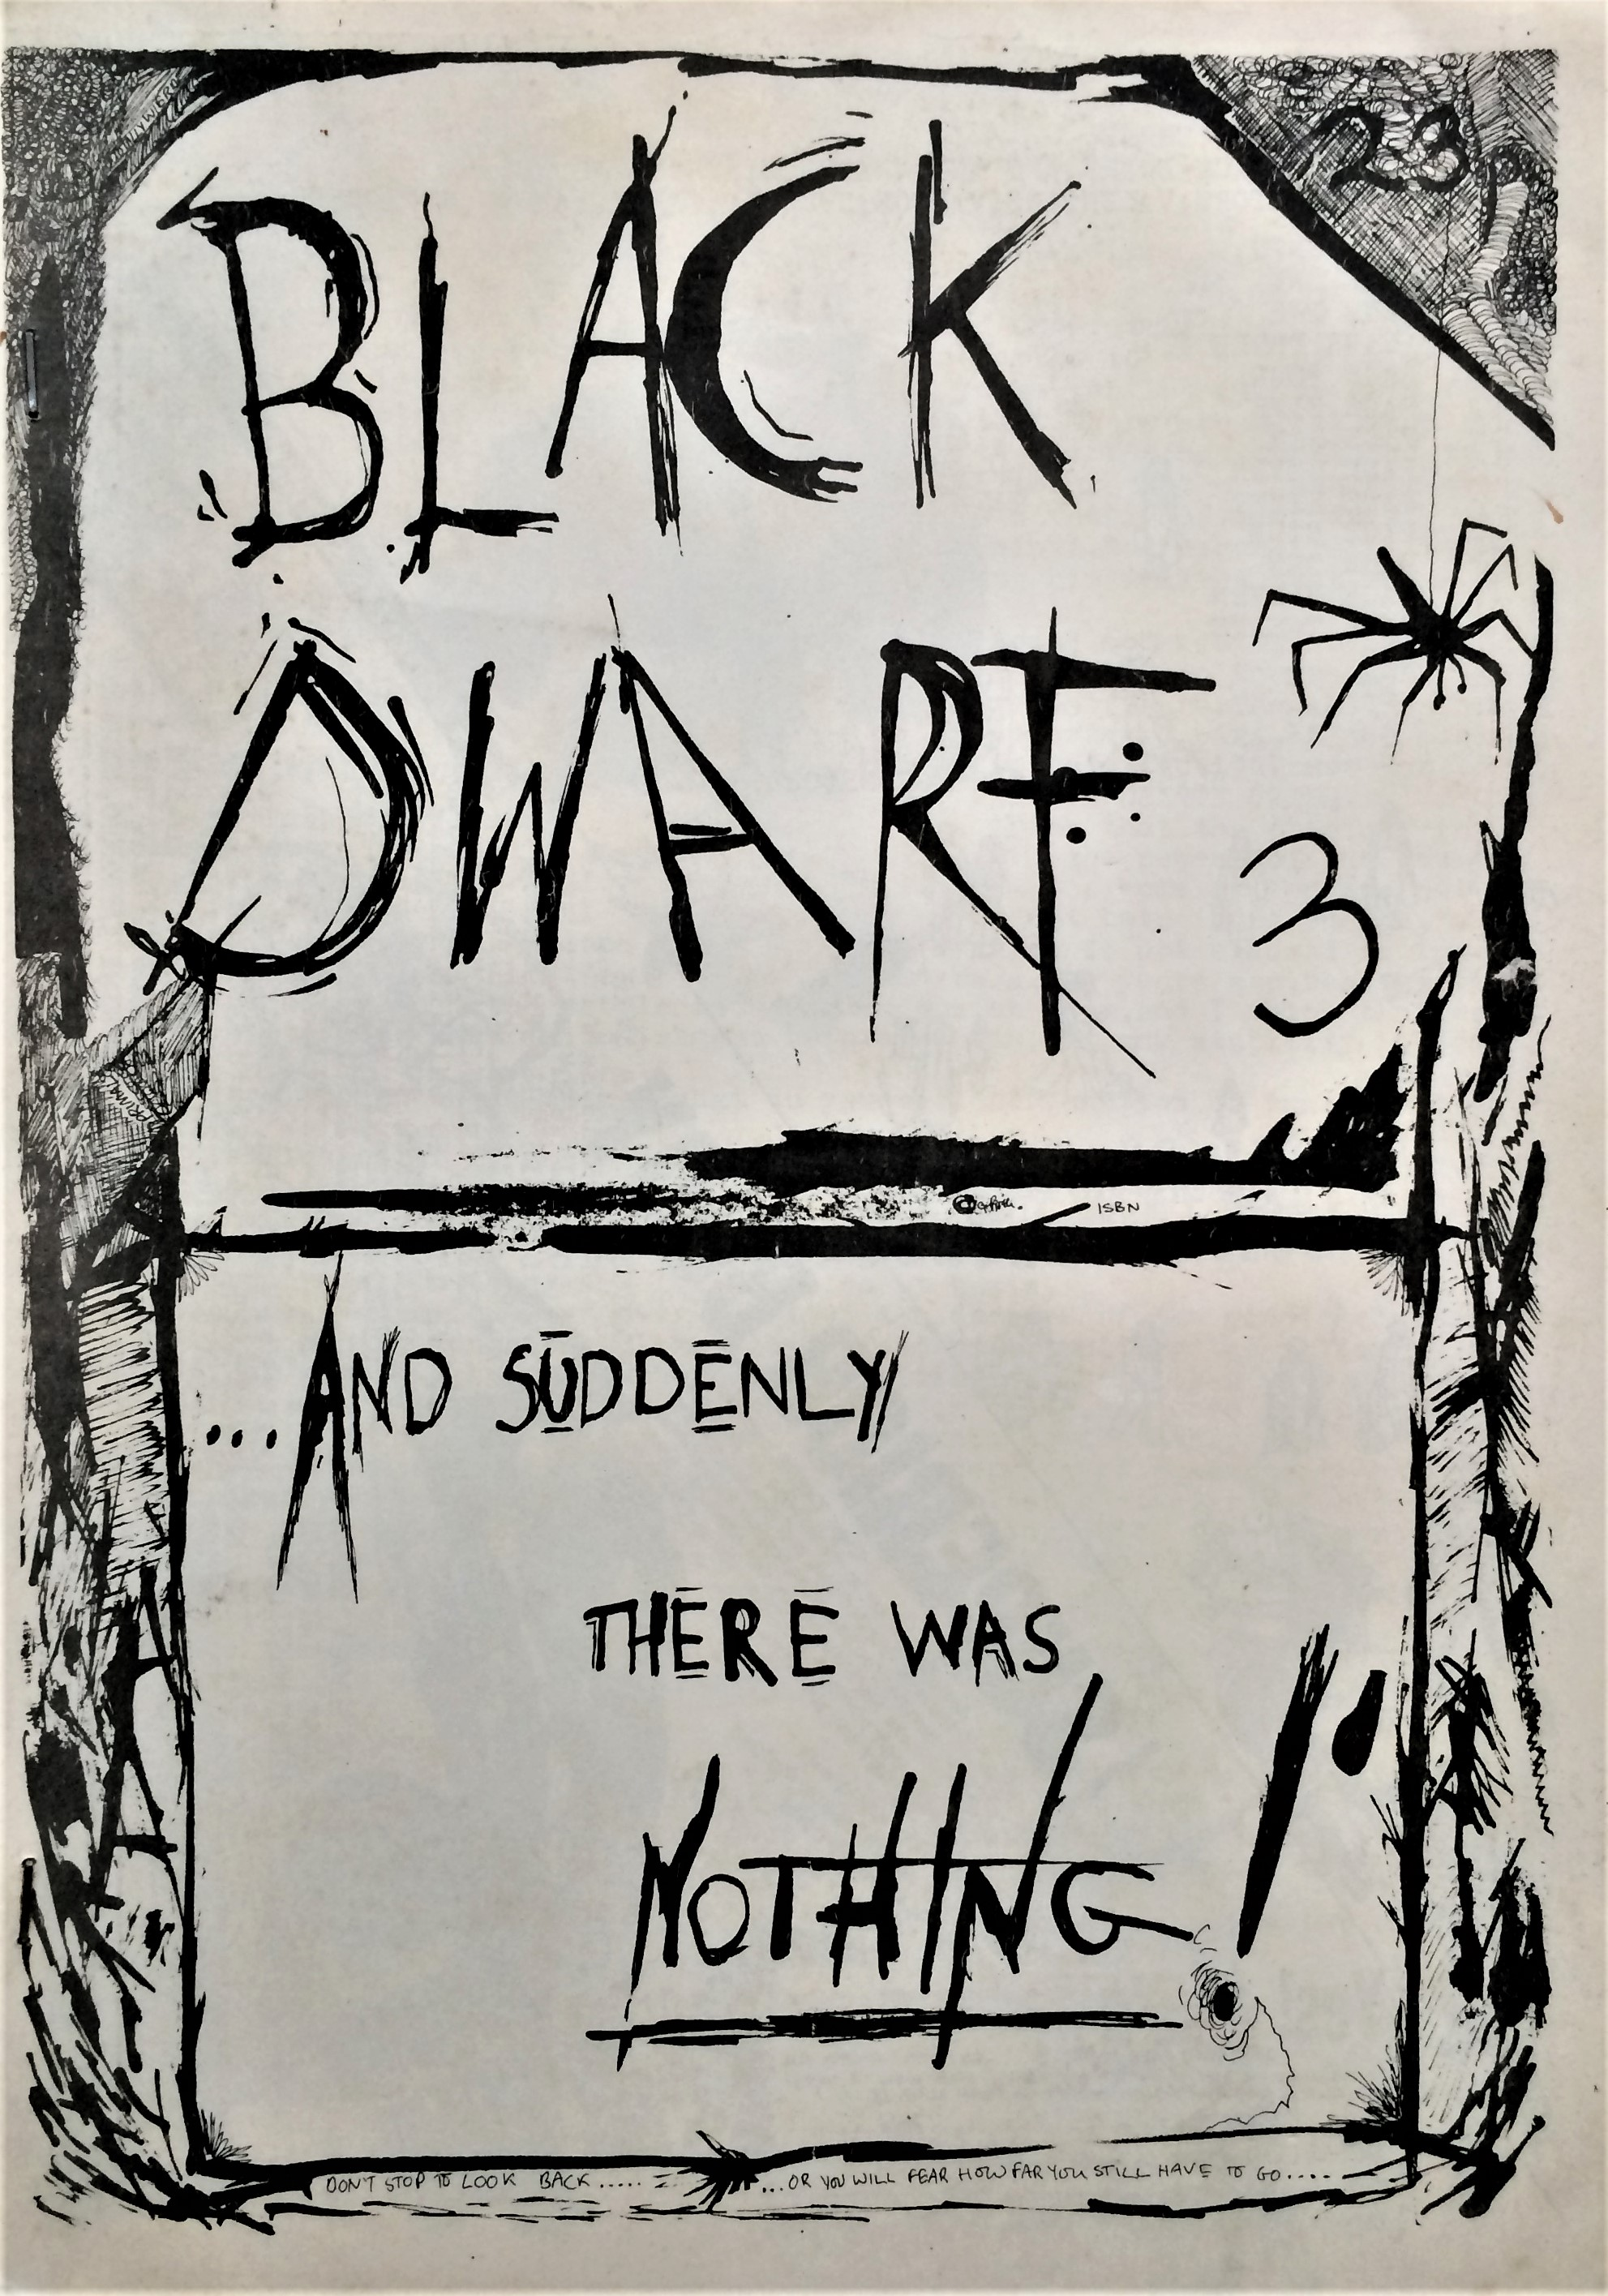 Black-Dwarf-Issue-3-And-Suddenly-There-Was-Nothing